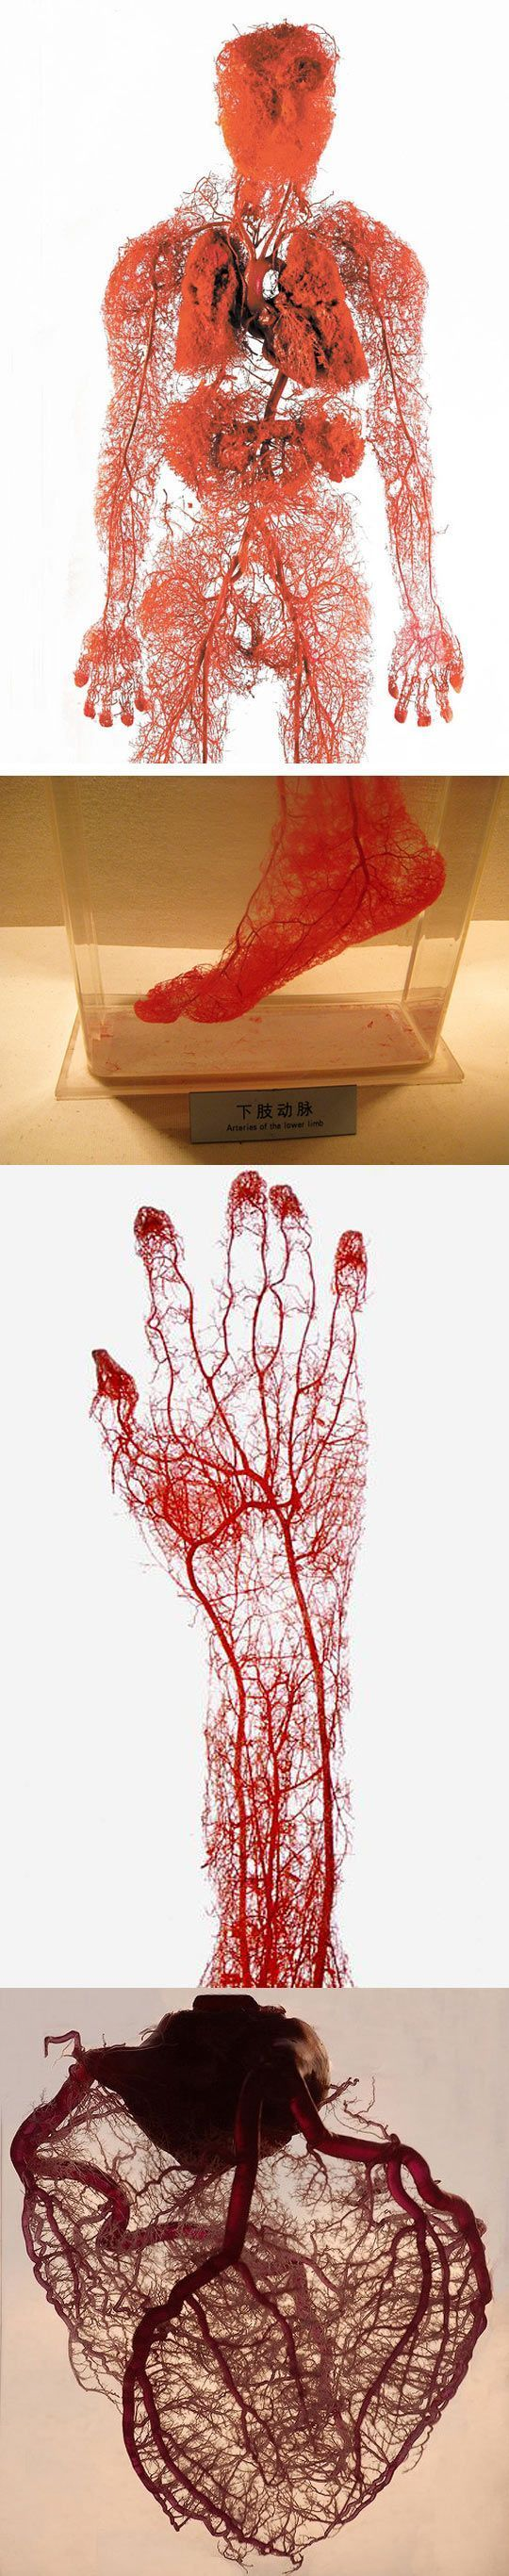 Blood vessels in the human body #biology #anatomy #insides